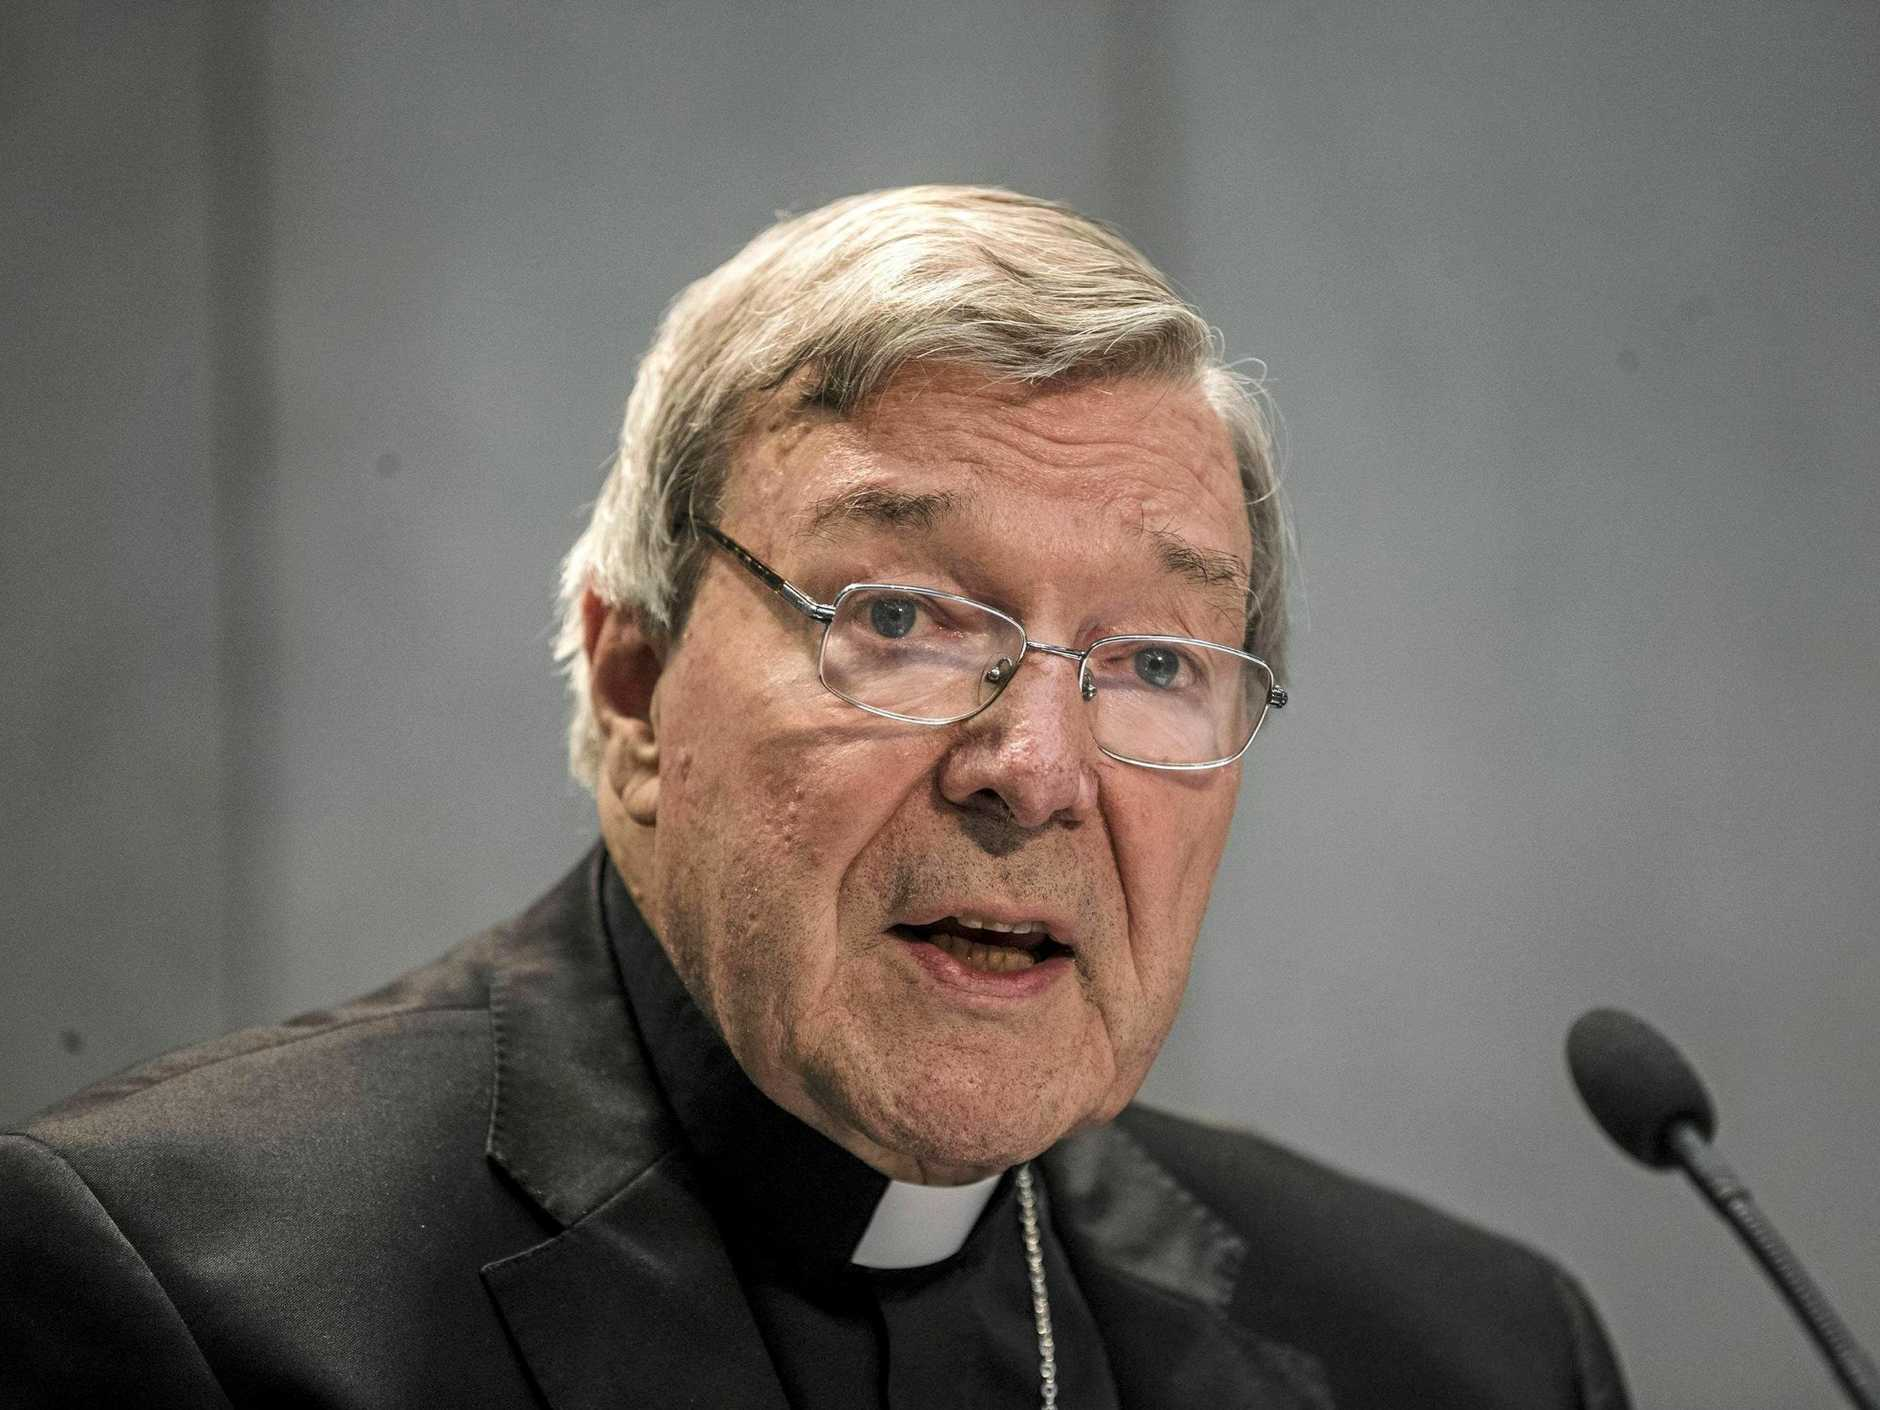 Cardinal George Pell has been found guilty of historical sexual assault offences.